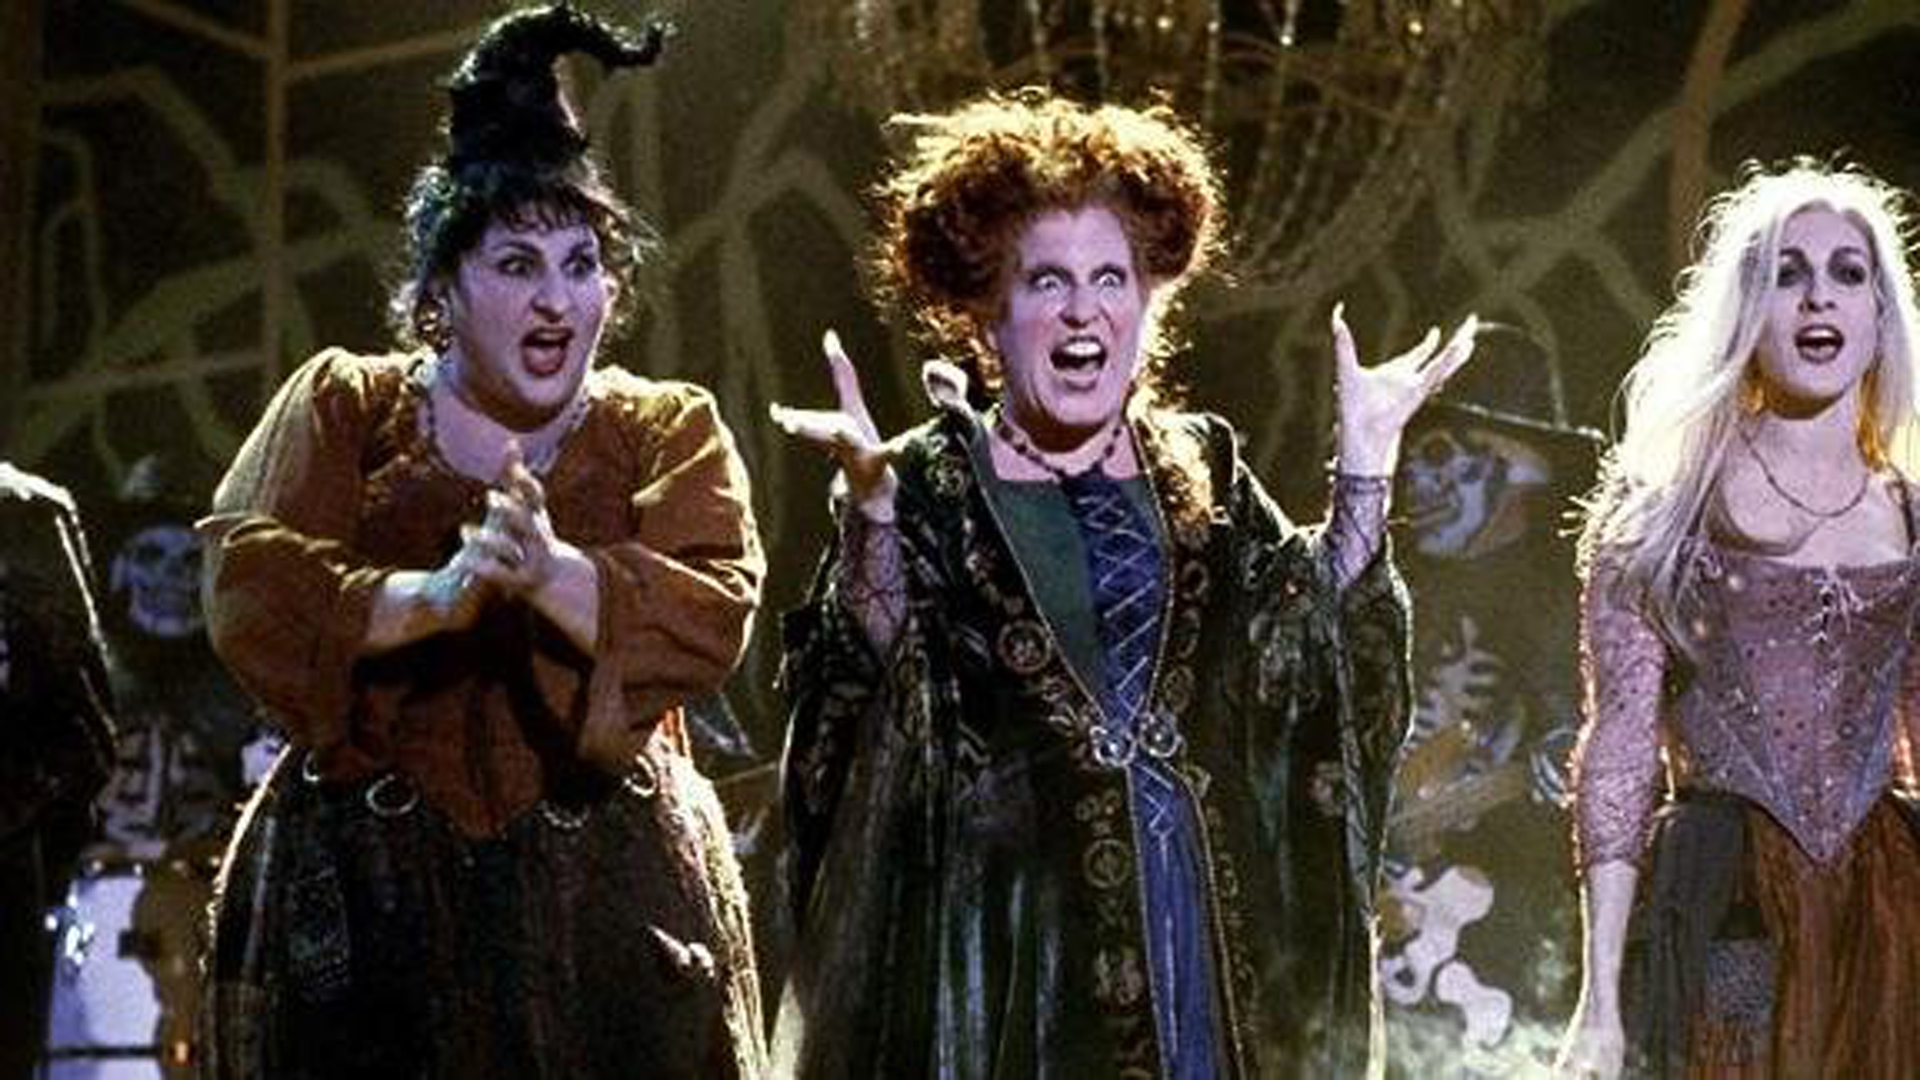 """The Sanderson sisters are seen in a still image from the 1993 film """"Hocus Pocus."""" (Credit: Disney)"""